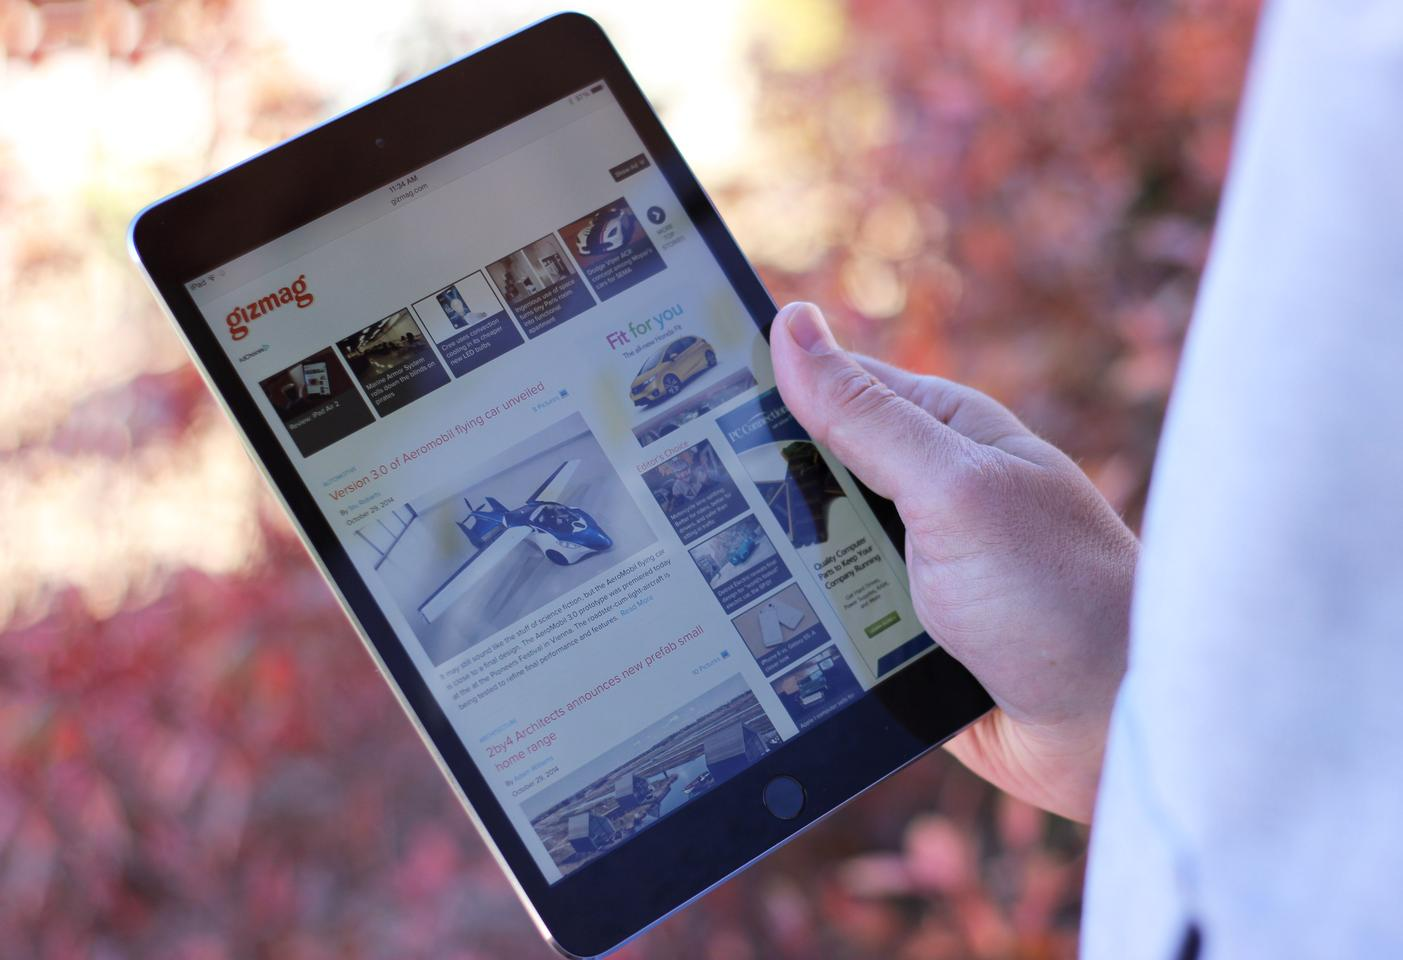 The iPad Air 2 weighs only 437 g (0.96 lb) (Photo: Will Shanklin/Gizmag.com)